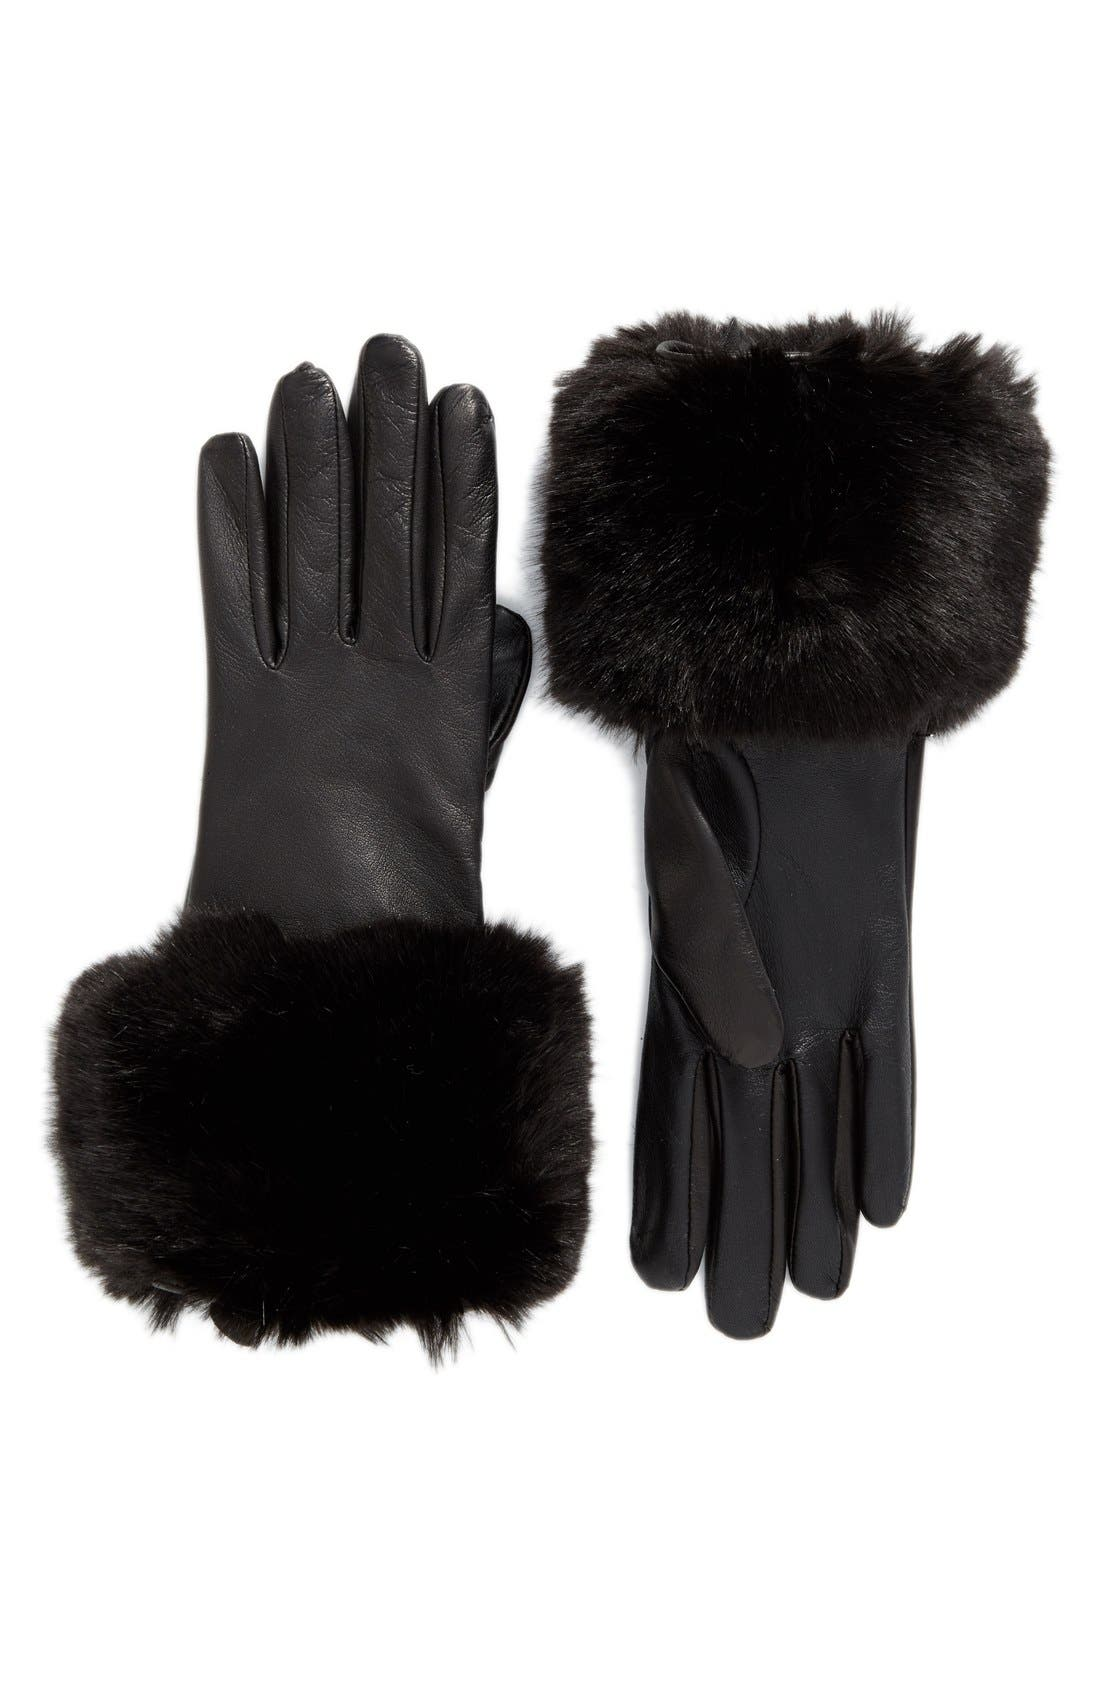 Alternate Image 1 Selected - Ted Baker London Leather Gloves with Faux Fur Cuff